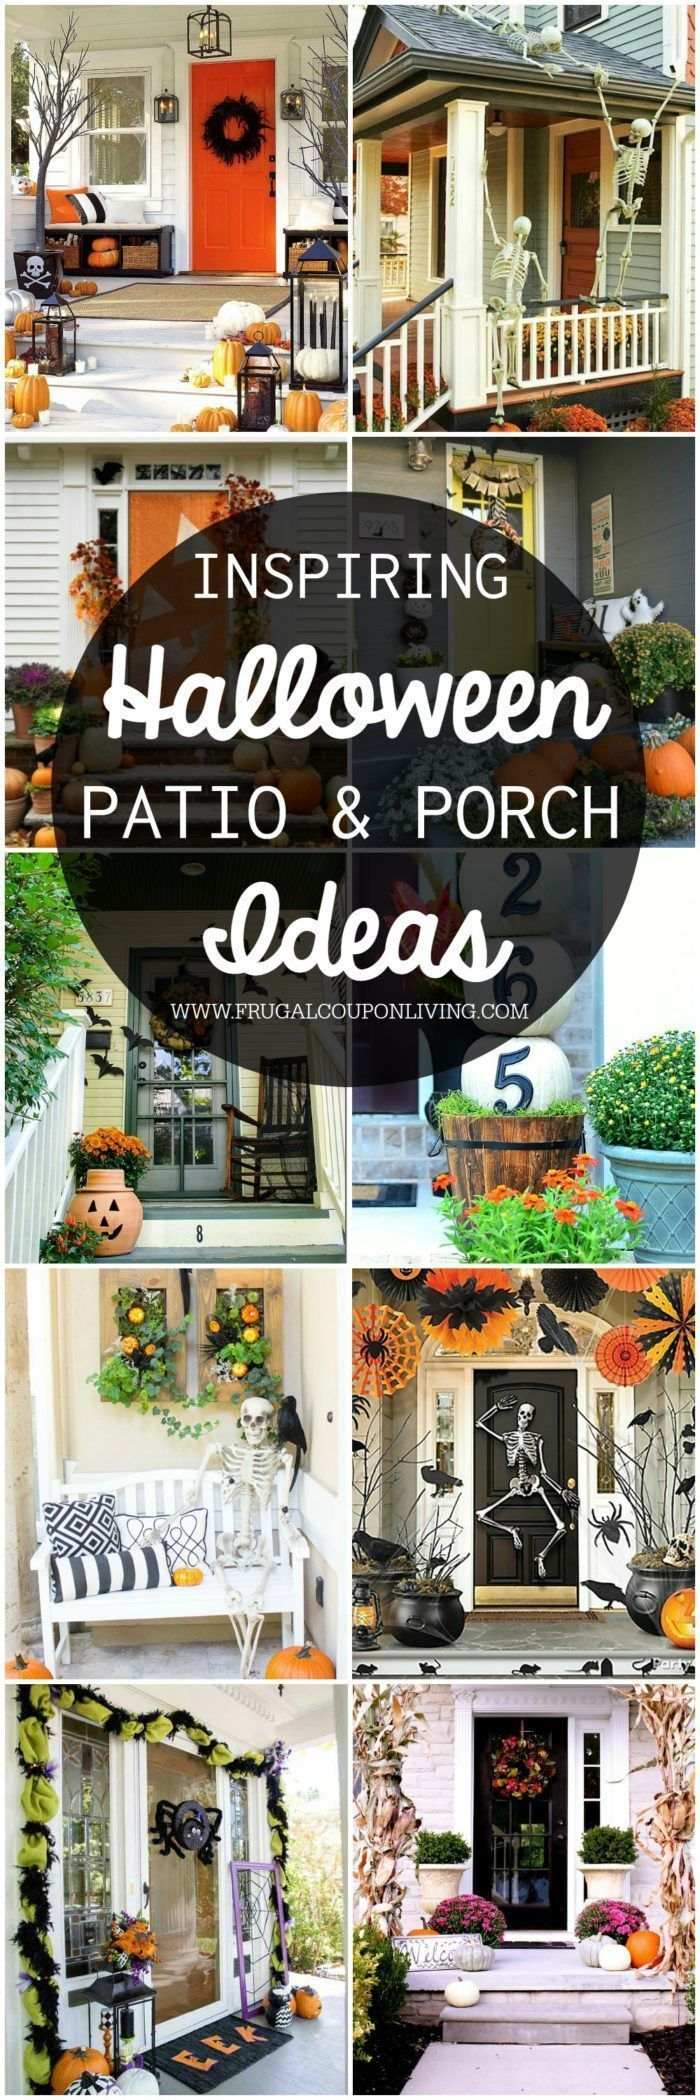 Best 25 scary halloween crafts ideas on pinterest for Country porch coupon code